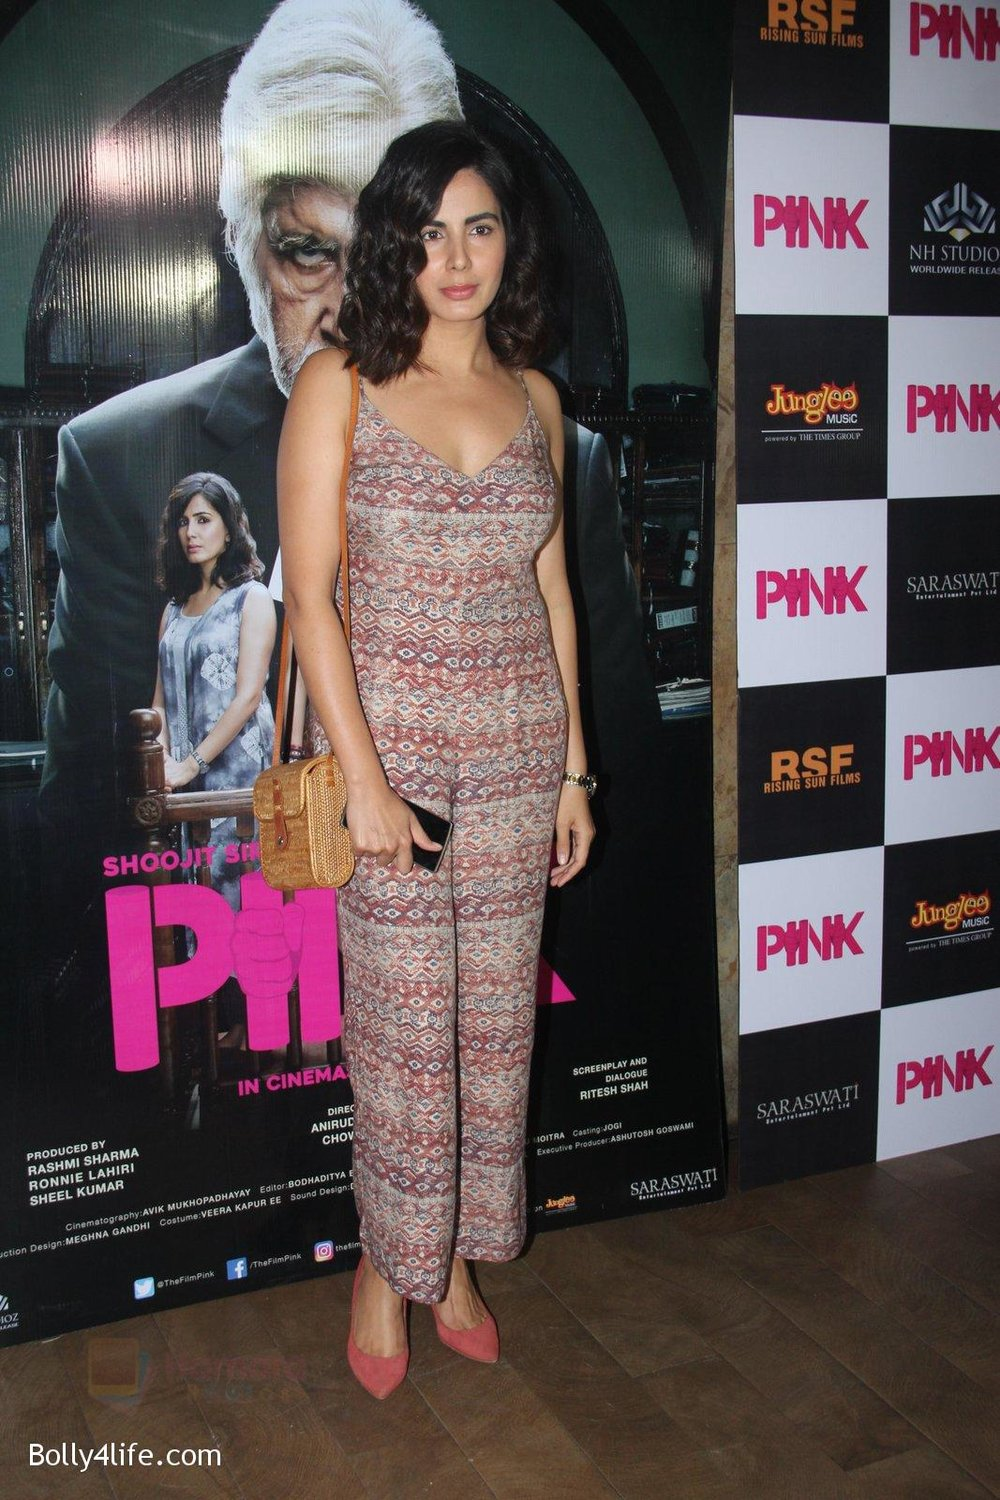 Kirti-Kulhari-at-Pink-Screening-in-Lightbox-on-12th-Sept-2016-64.jpg